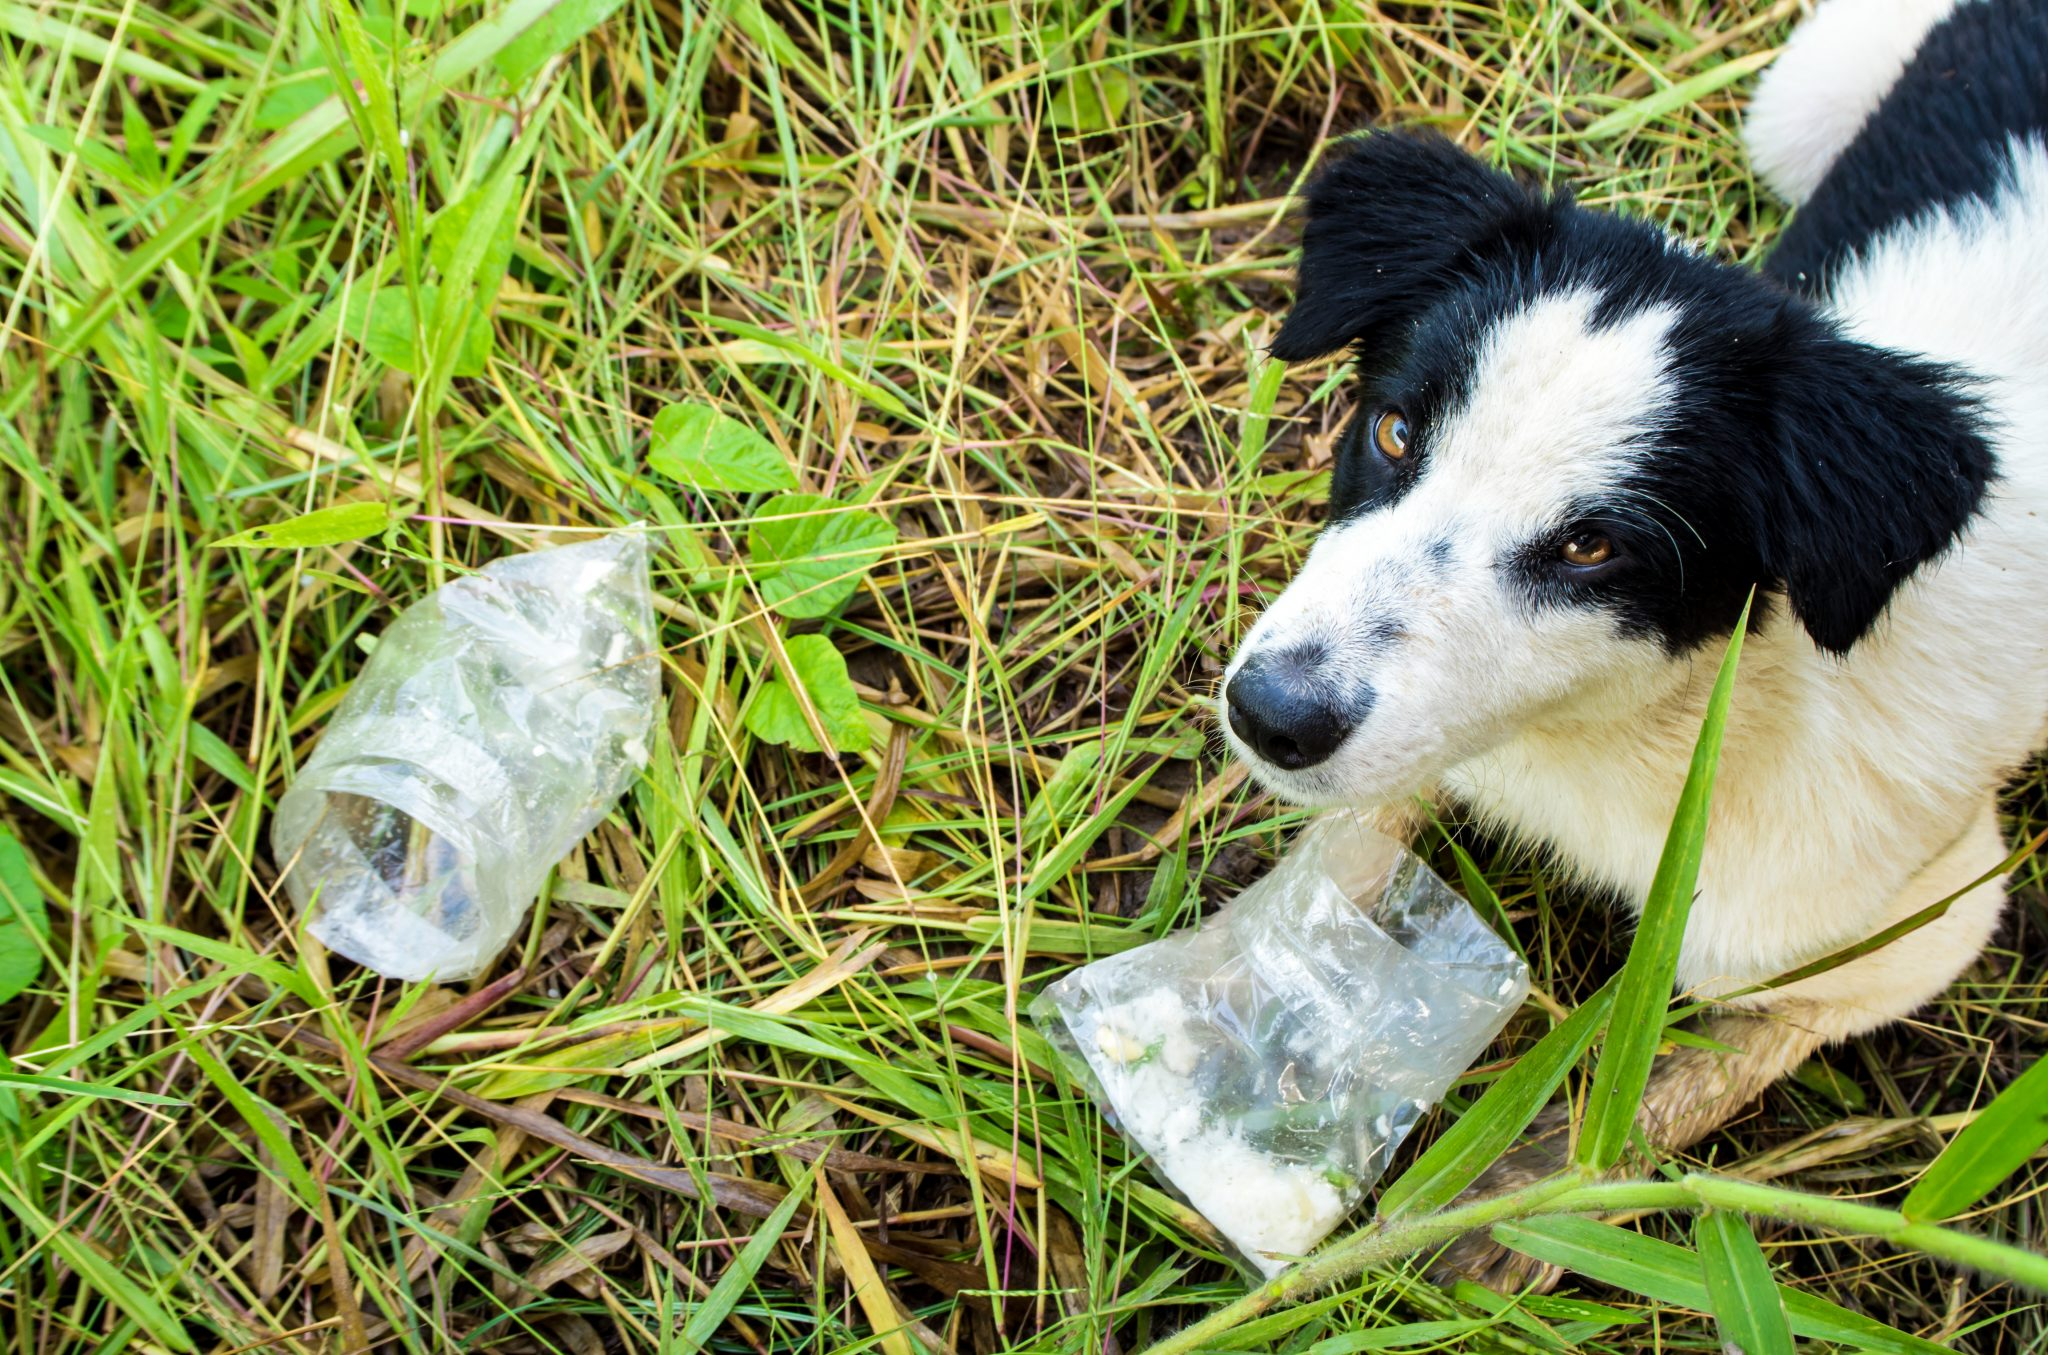 How To Be An Environmentally Friendly Dog Owner World Environment Day {HowToBeAnEnvironmentallyFriendlyDogOwner} #EnvironmentallyFriendlyDogOwner #WorldEnvironmentDay #OrganicDog #NaturalDogProducts #NoPlasticDogProducts www.scruffylittleterrier.com